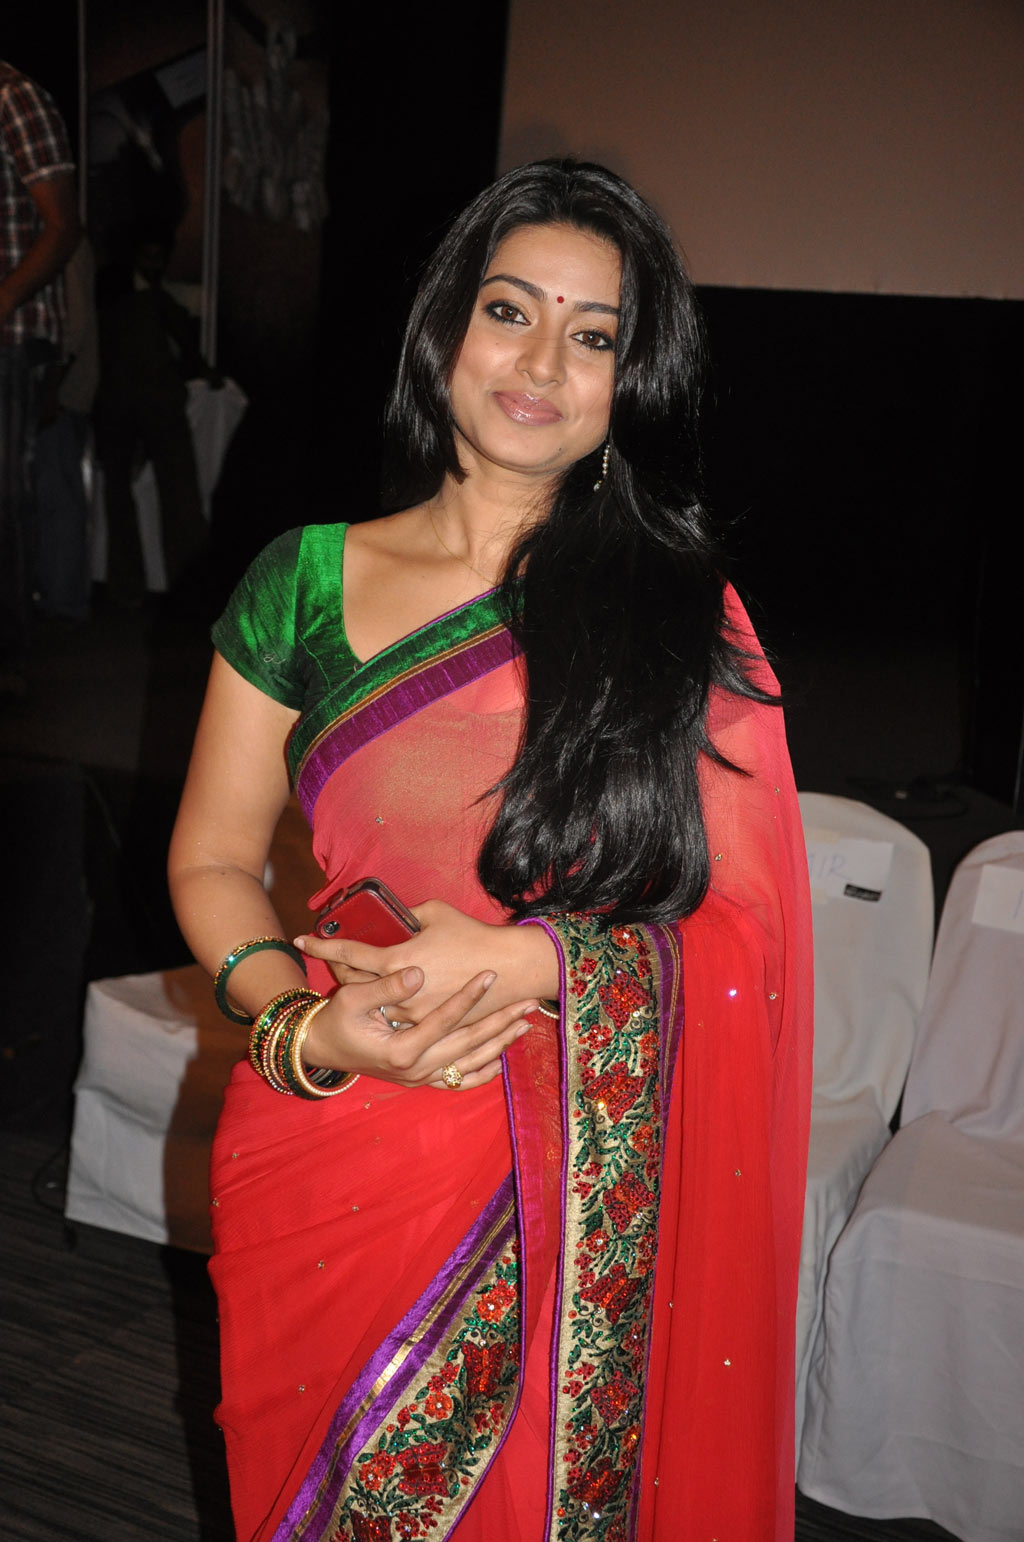 Gorgeous sneha in red saree looking sparkling and ornamental